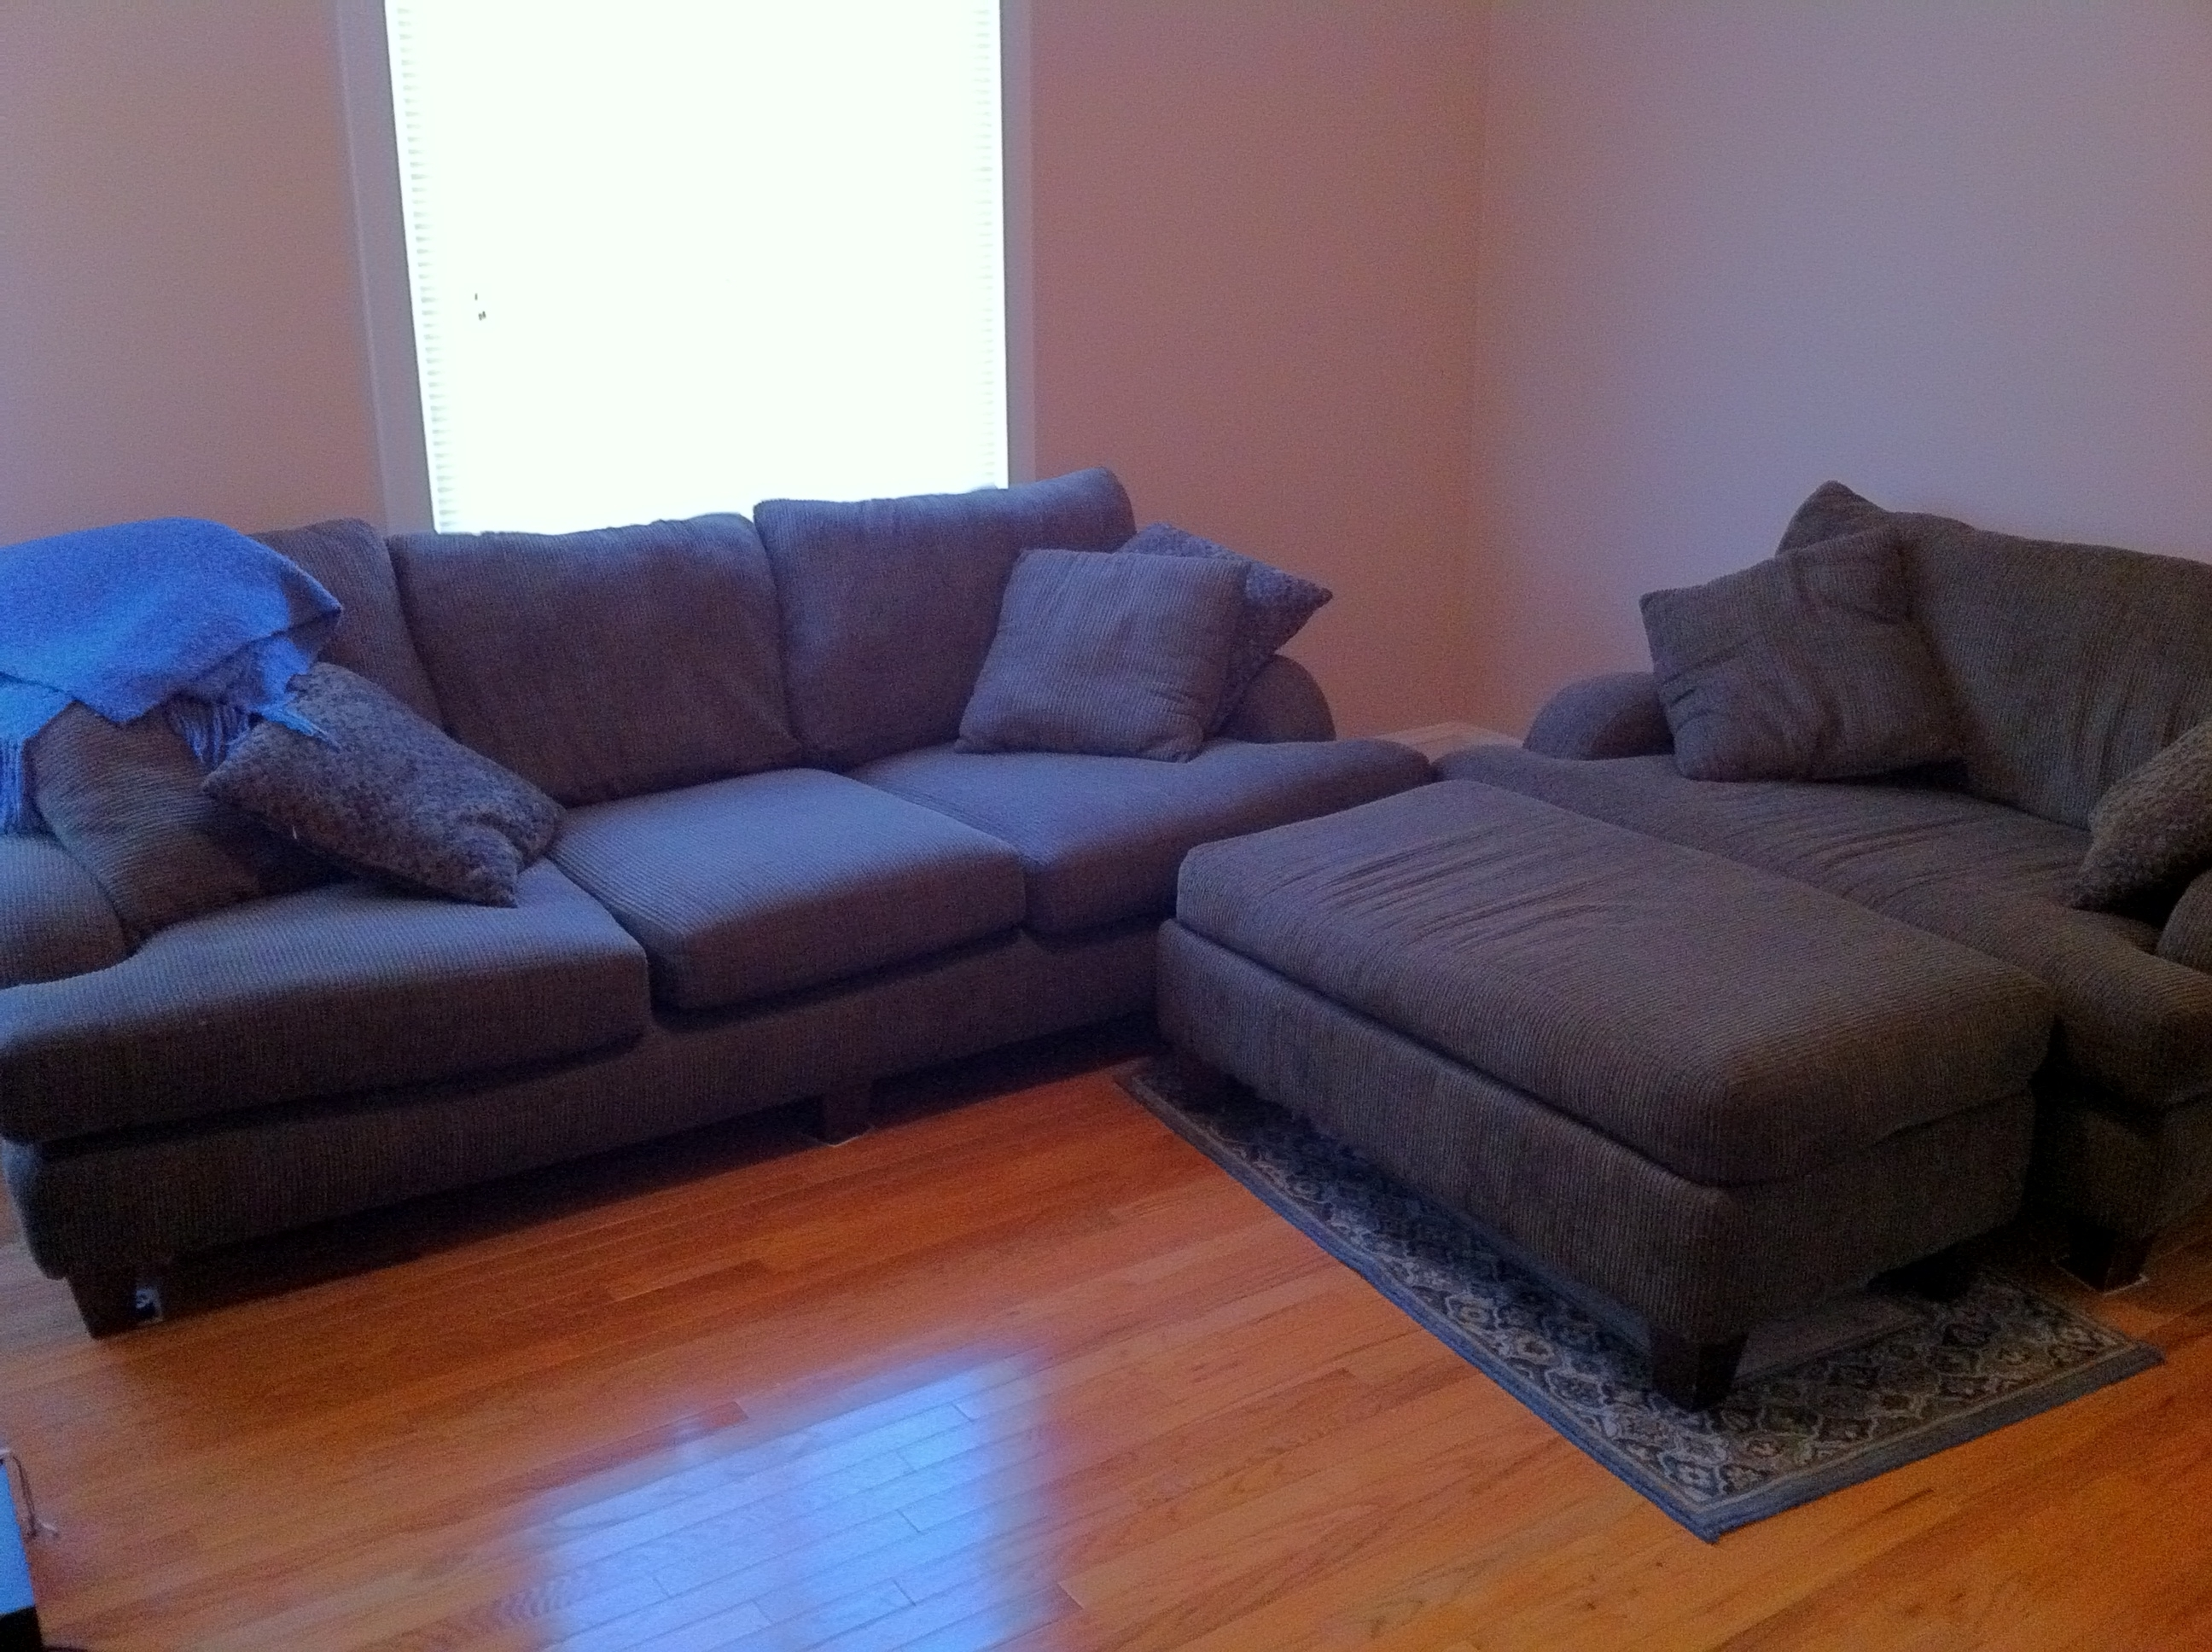 Sectional Sofas At Craigslist With Widely Used Stylish Sectional Sofas On Craigslist – Mediasupload (View 19 of 20)